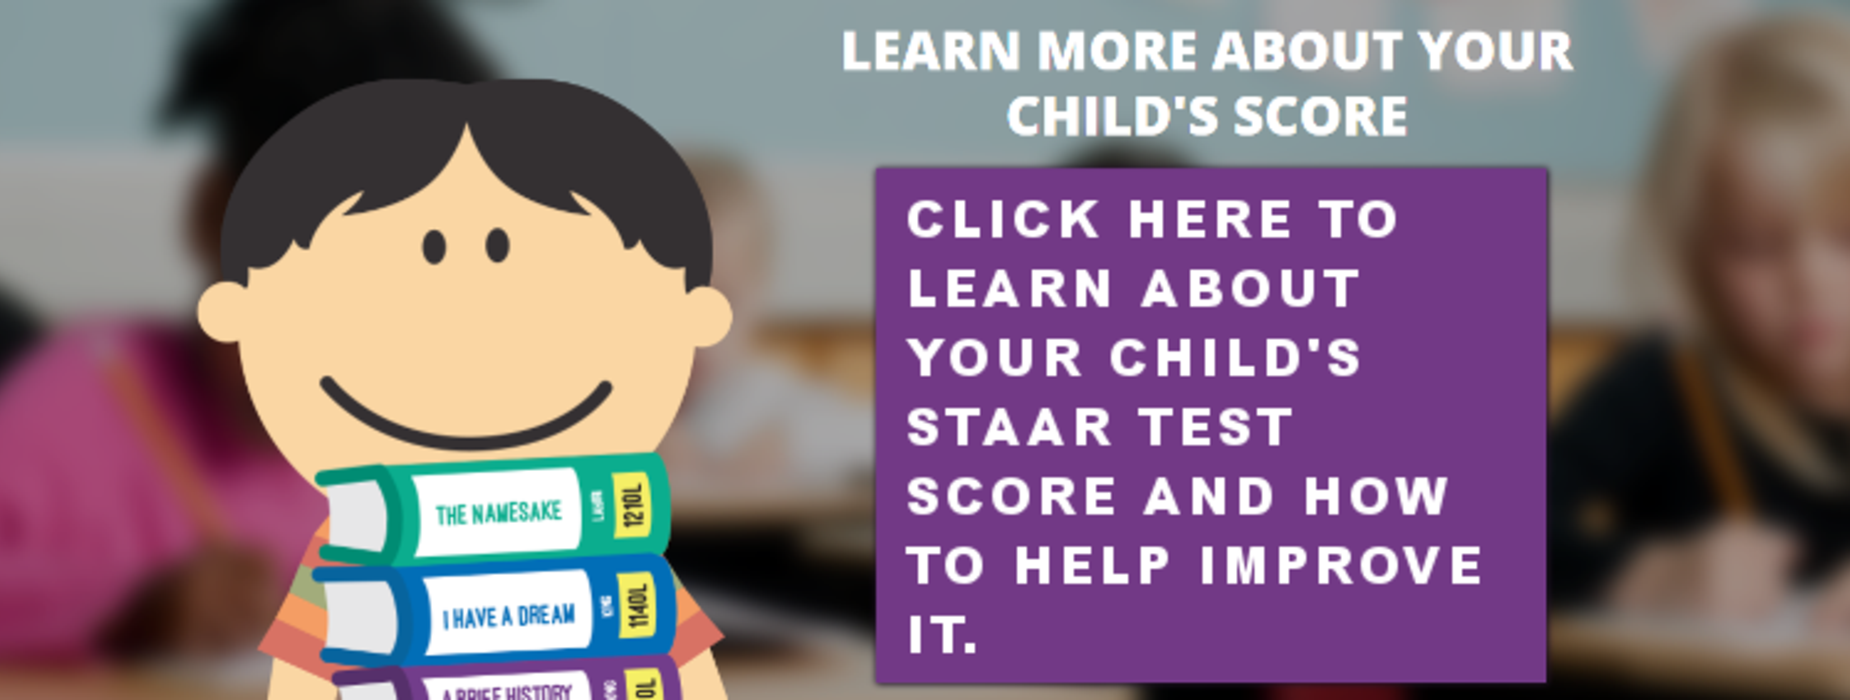 Learn about child's STAAR score